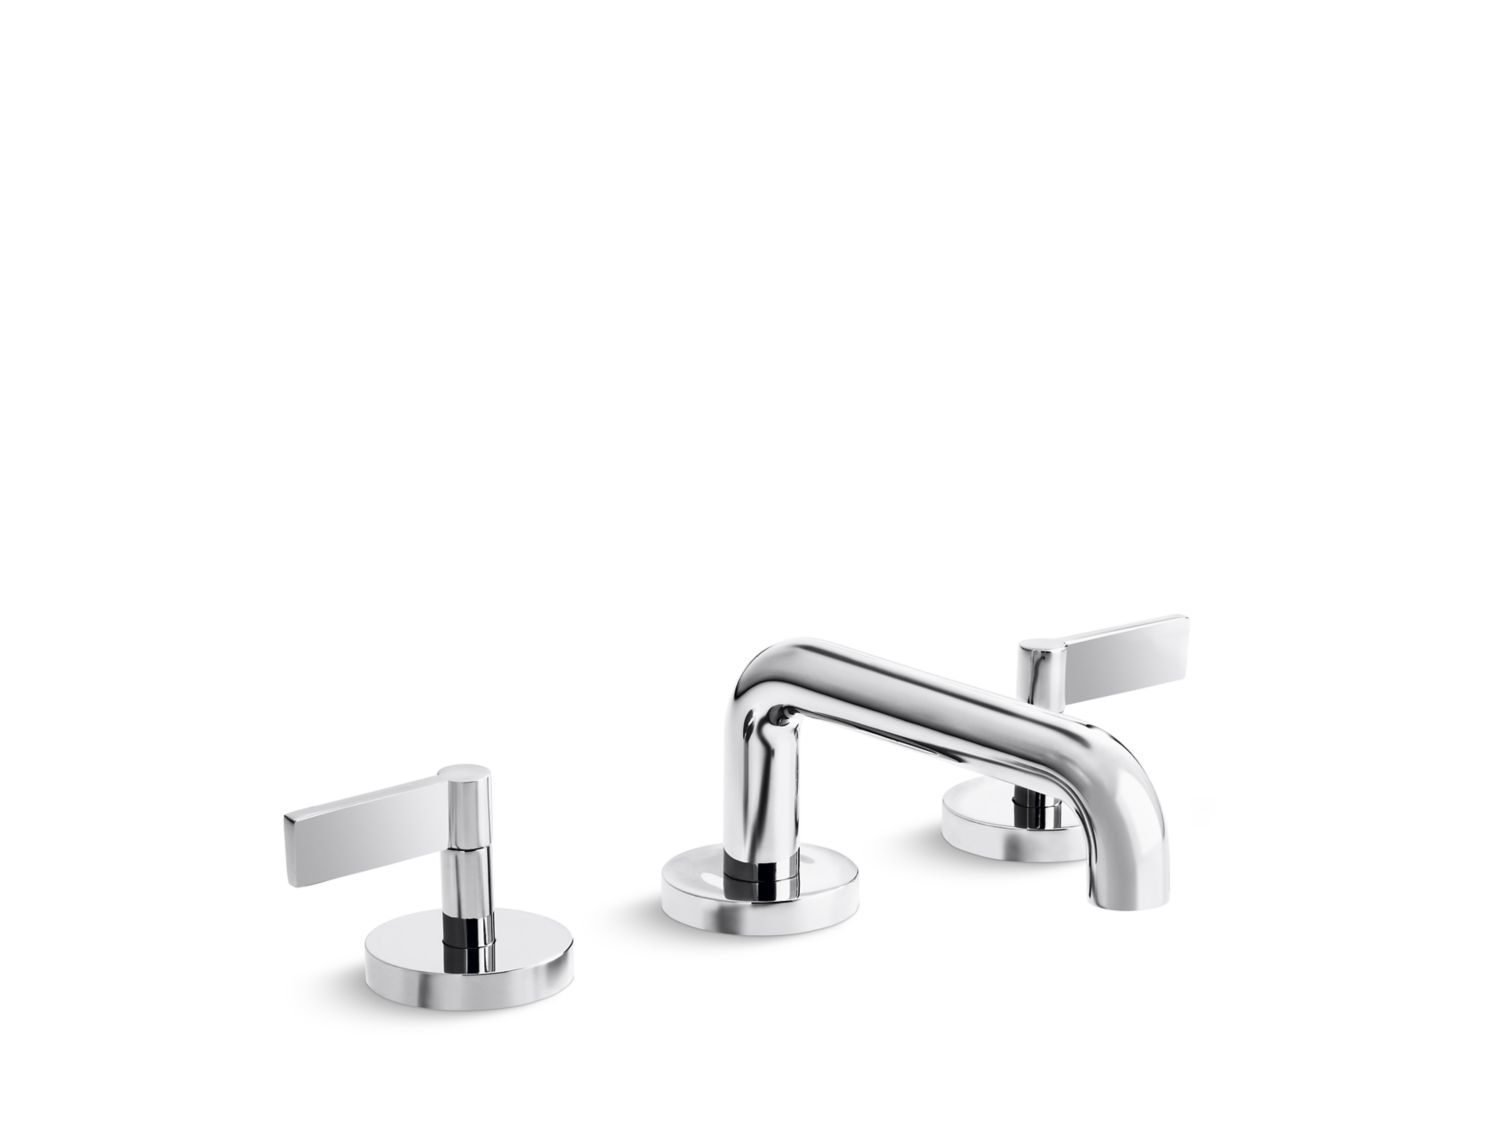 jack htm gunmetal faucet london faucets kitchen cmyk one page and kallista kll bath black